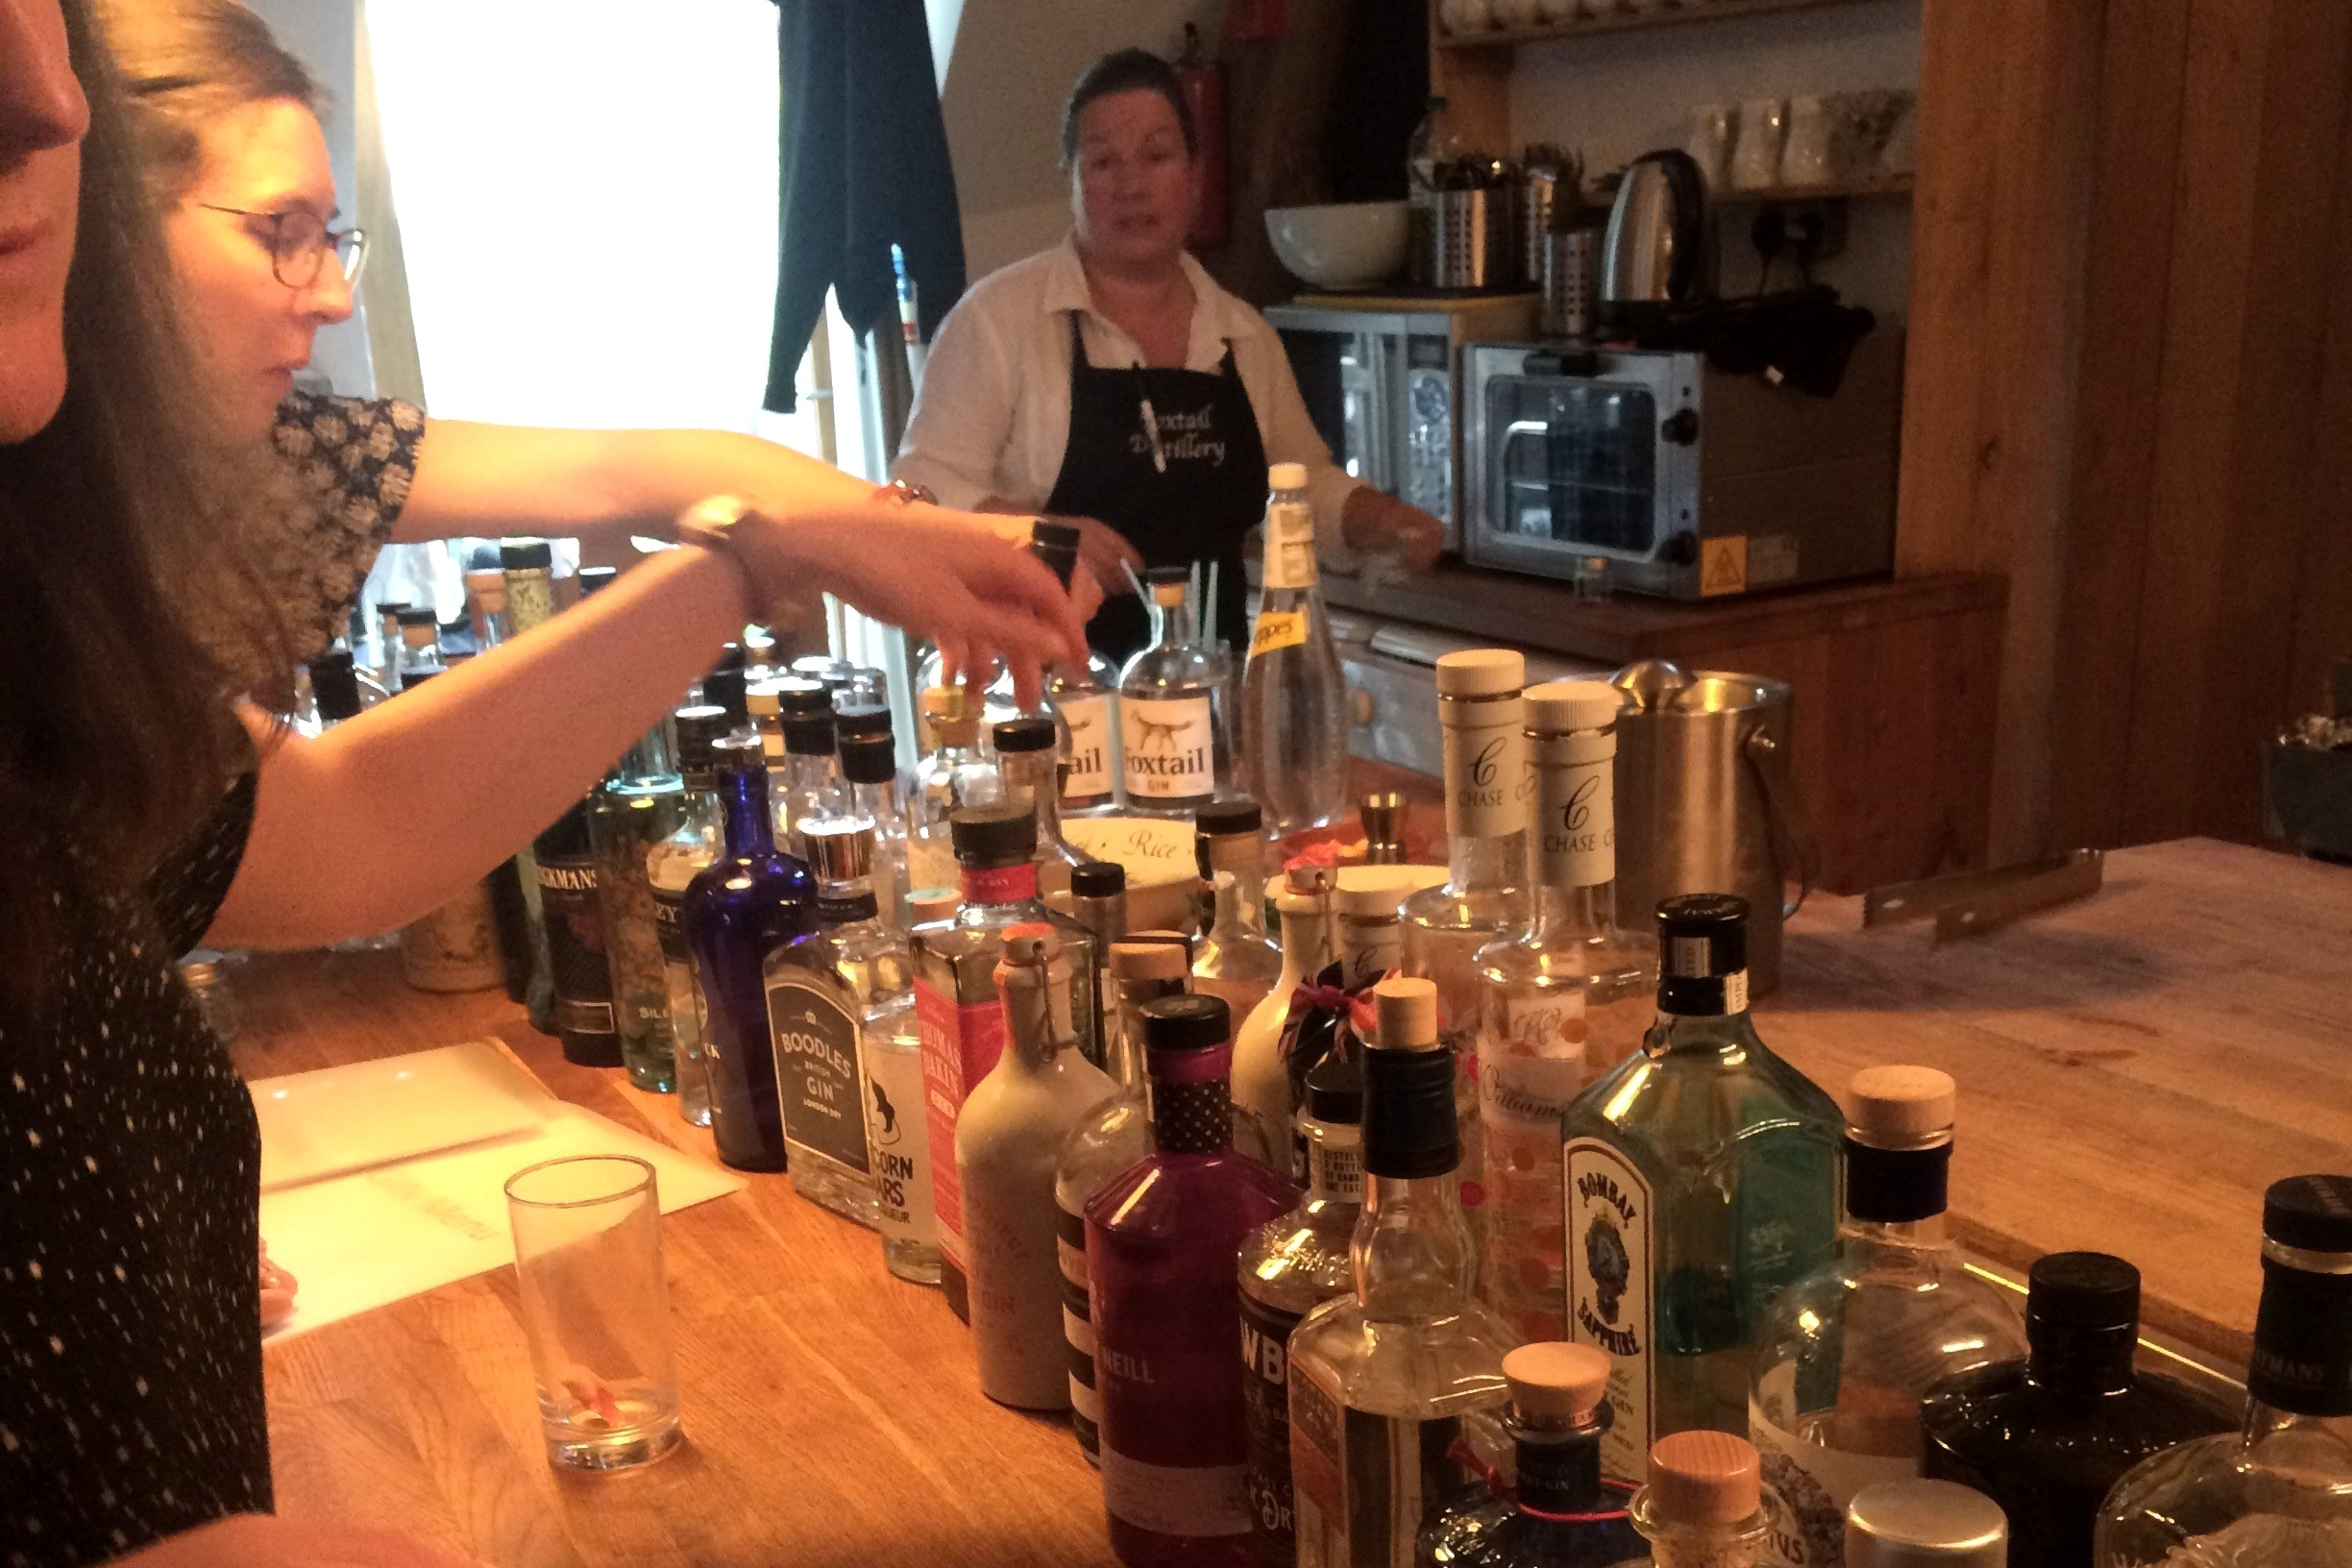 Copy of Private Gin Tasting experience with Foxtail Gin - learn about the medicinal origins of Gin & tasting approach used to describe the 'nose', 'intensity' and flavour of each, then blend your own gin.